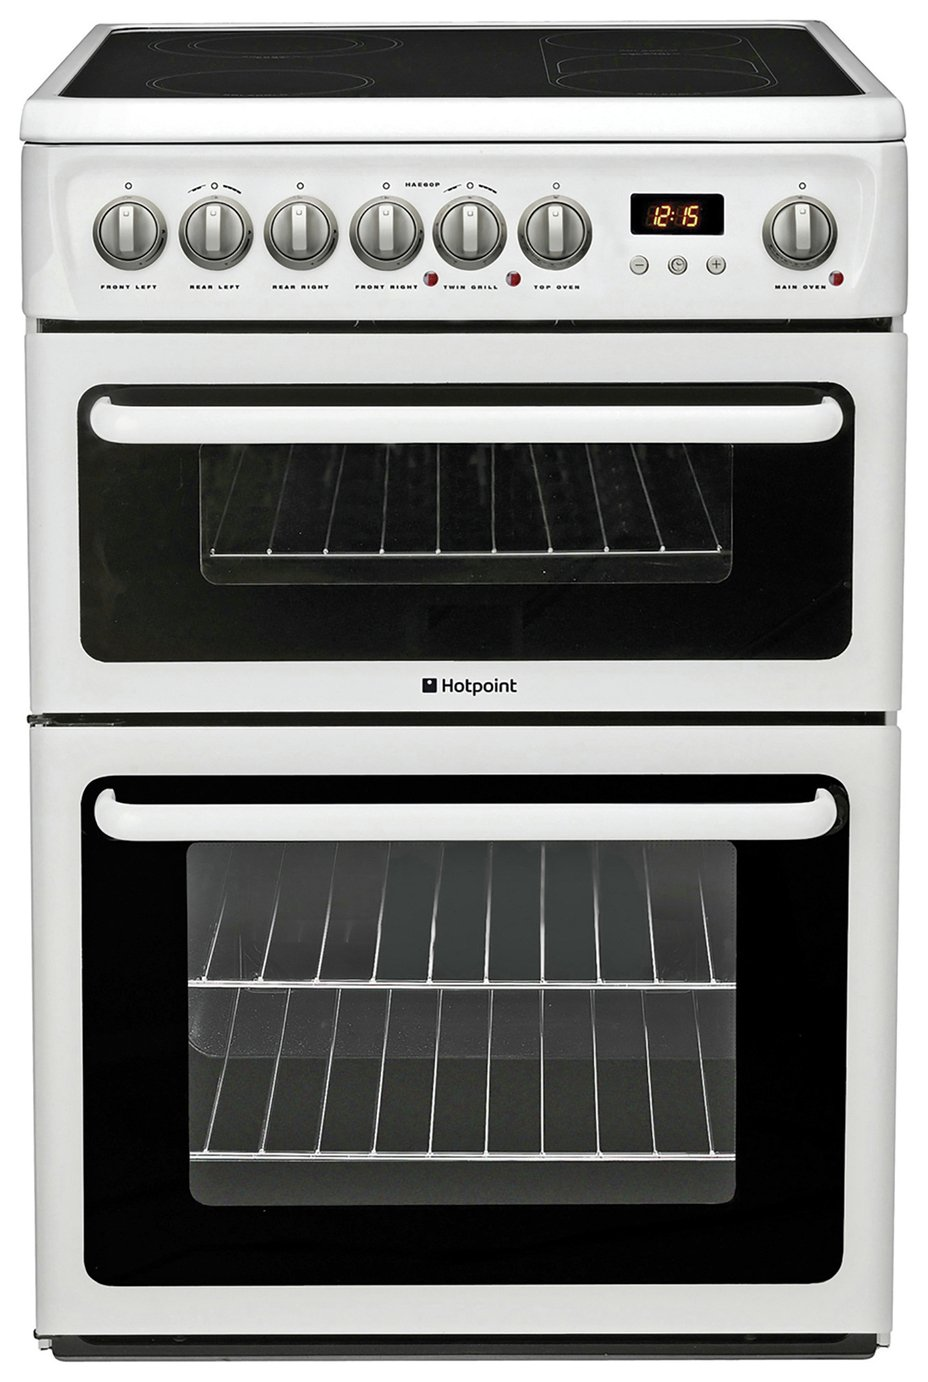 Hotpoint HAE60P 60cm Double Oven Electric Cooker - White from Hotpoint